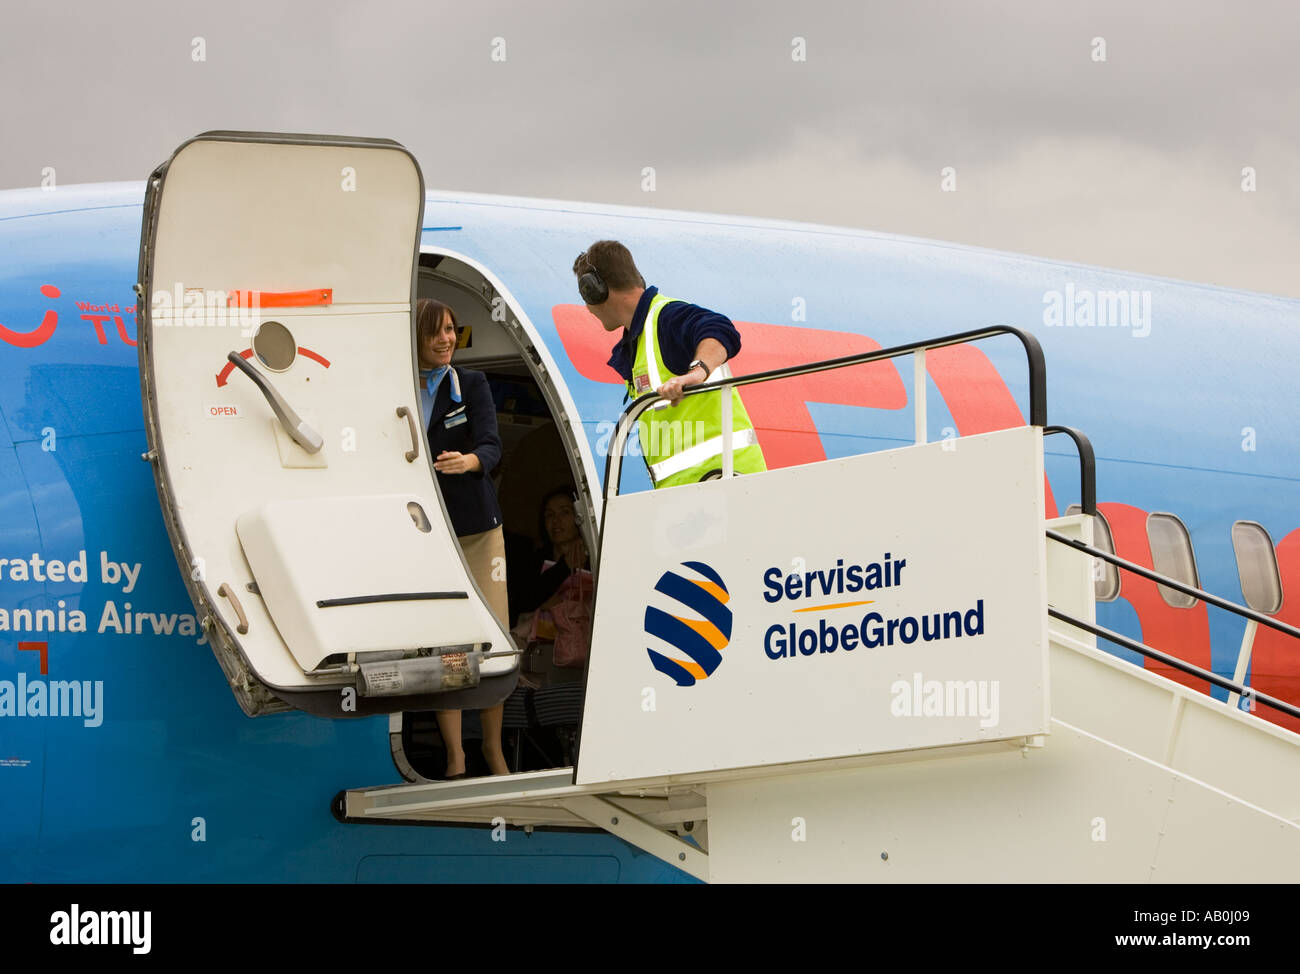 Ground Handling Service Personnel Position Steps To Door Of Boeing 737 That  Has Just Landed And